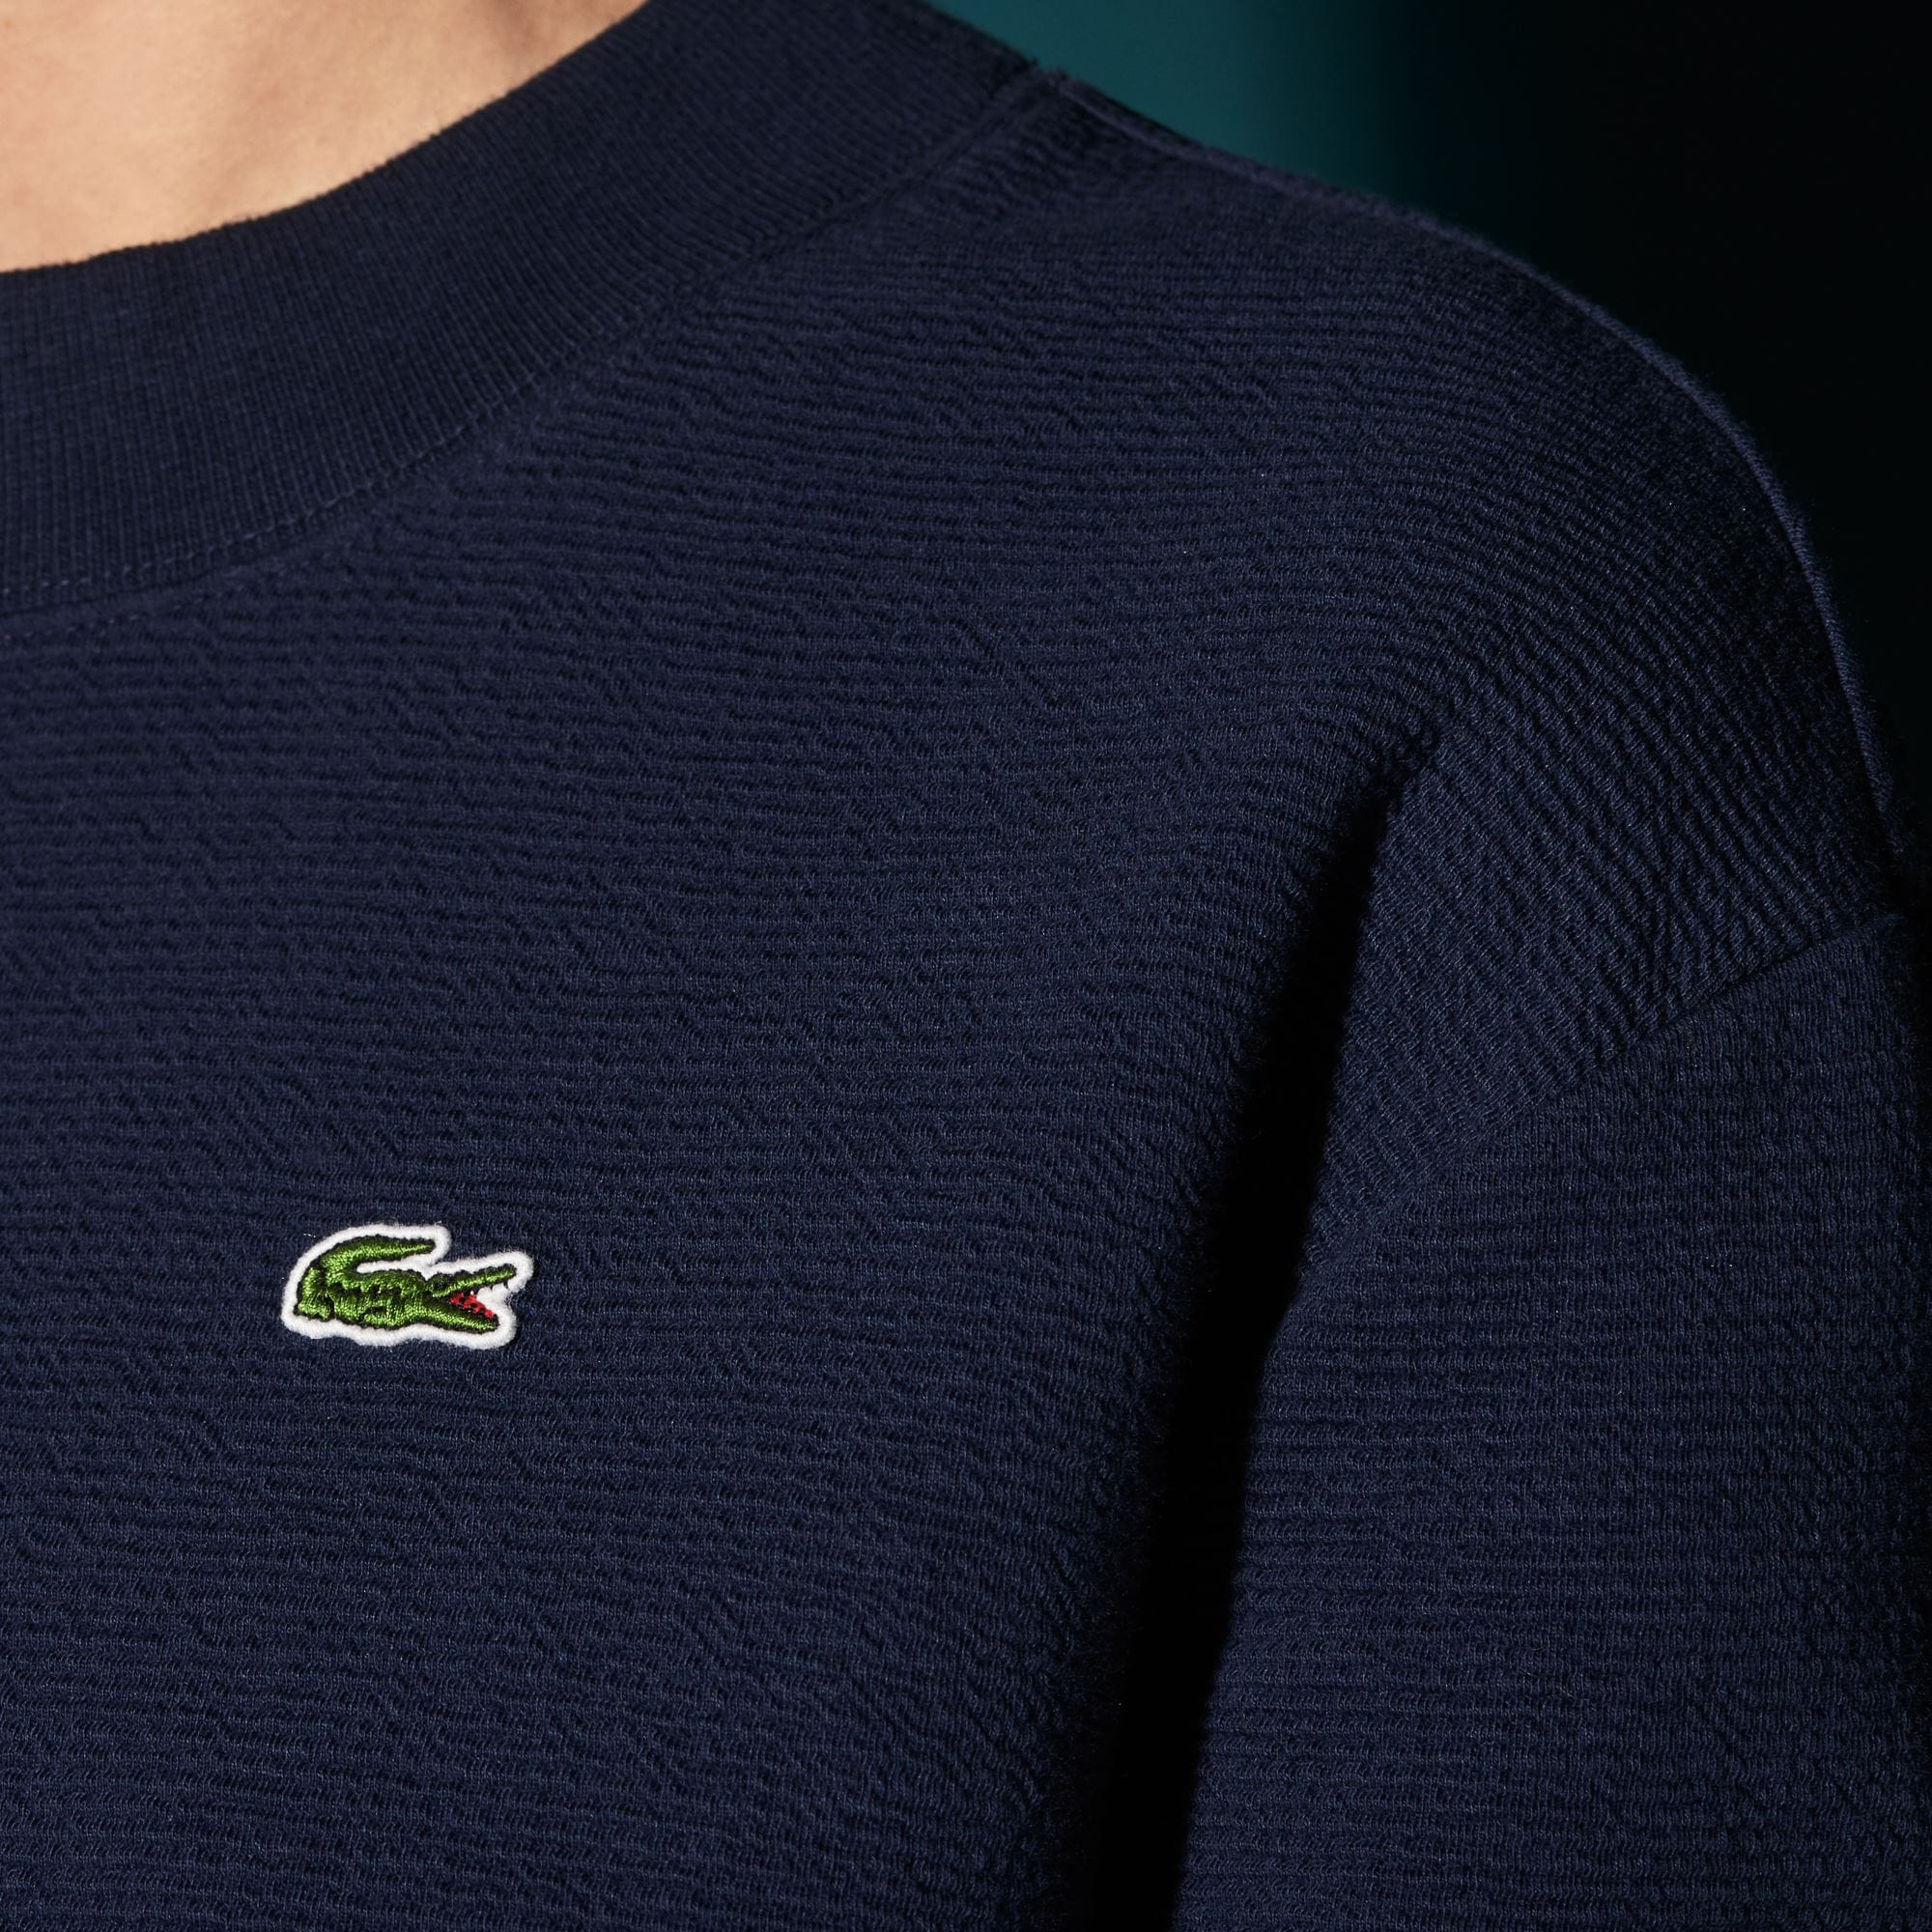 Women's Lacoste SPORT Honeycomb Fleece Tennis Sweatshirt